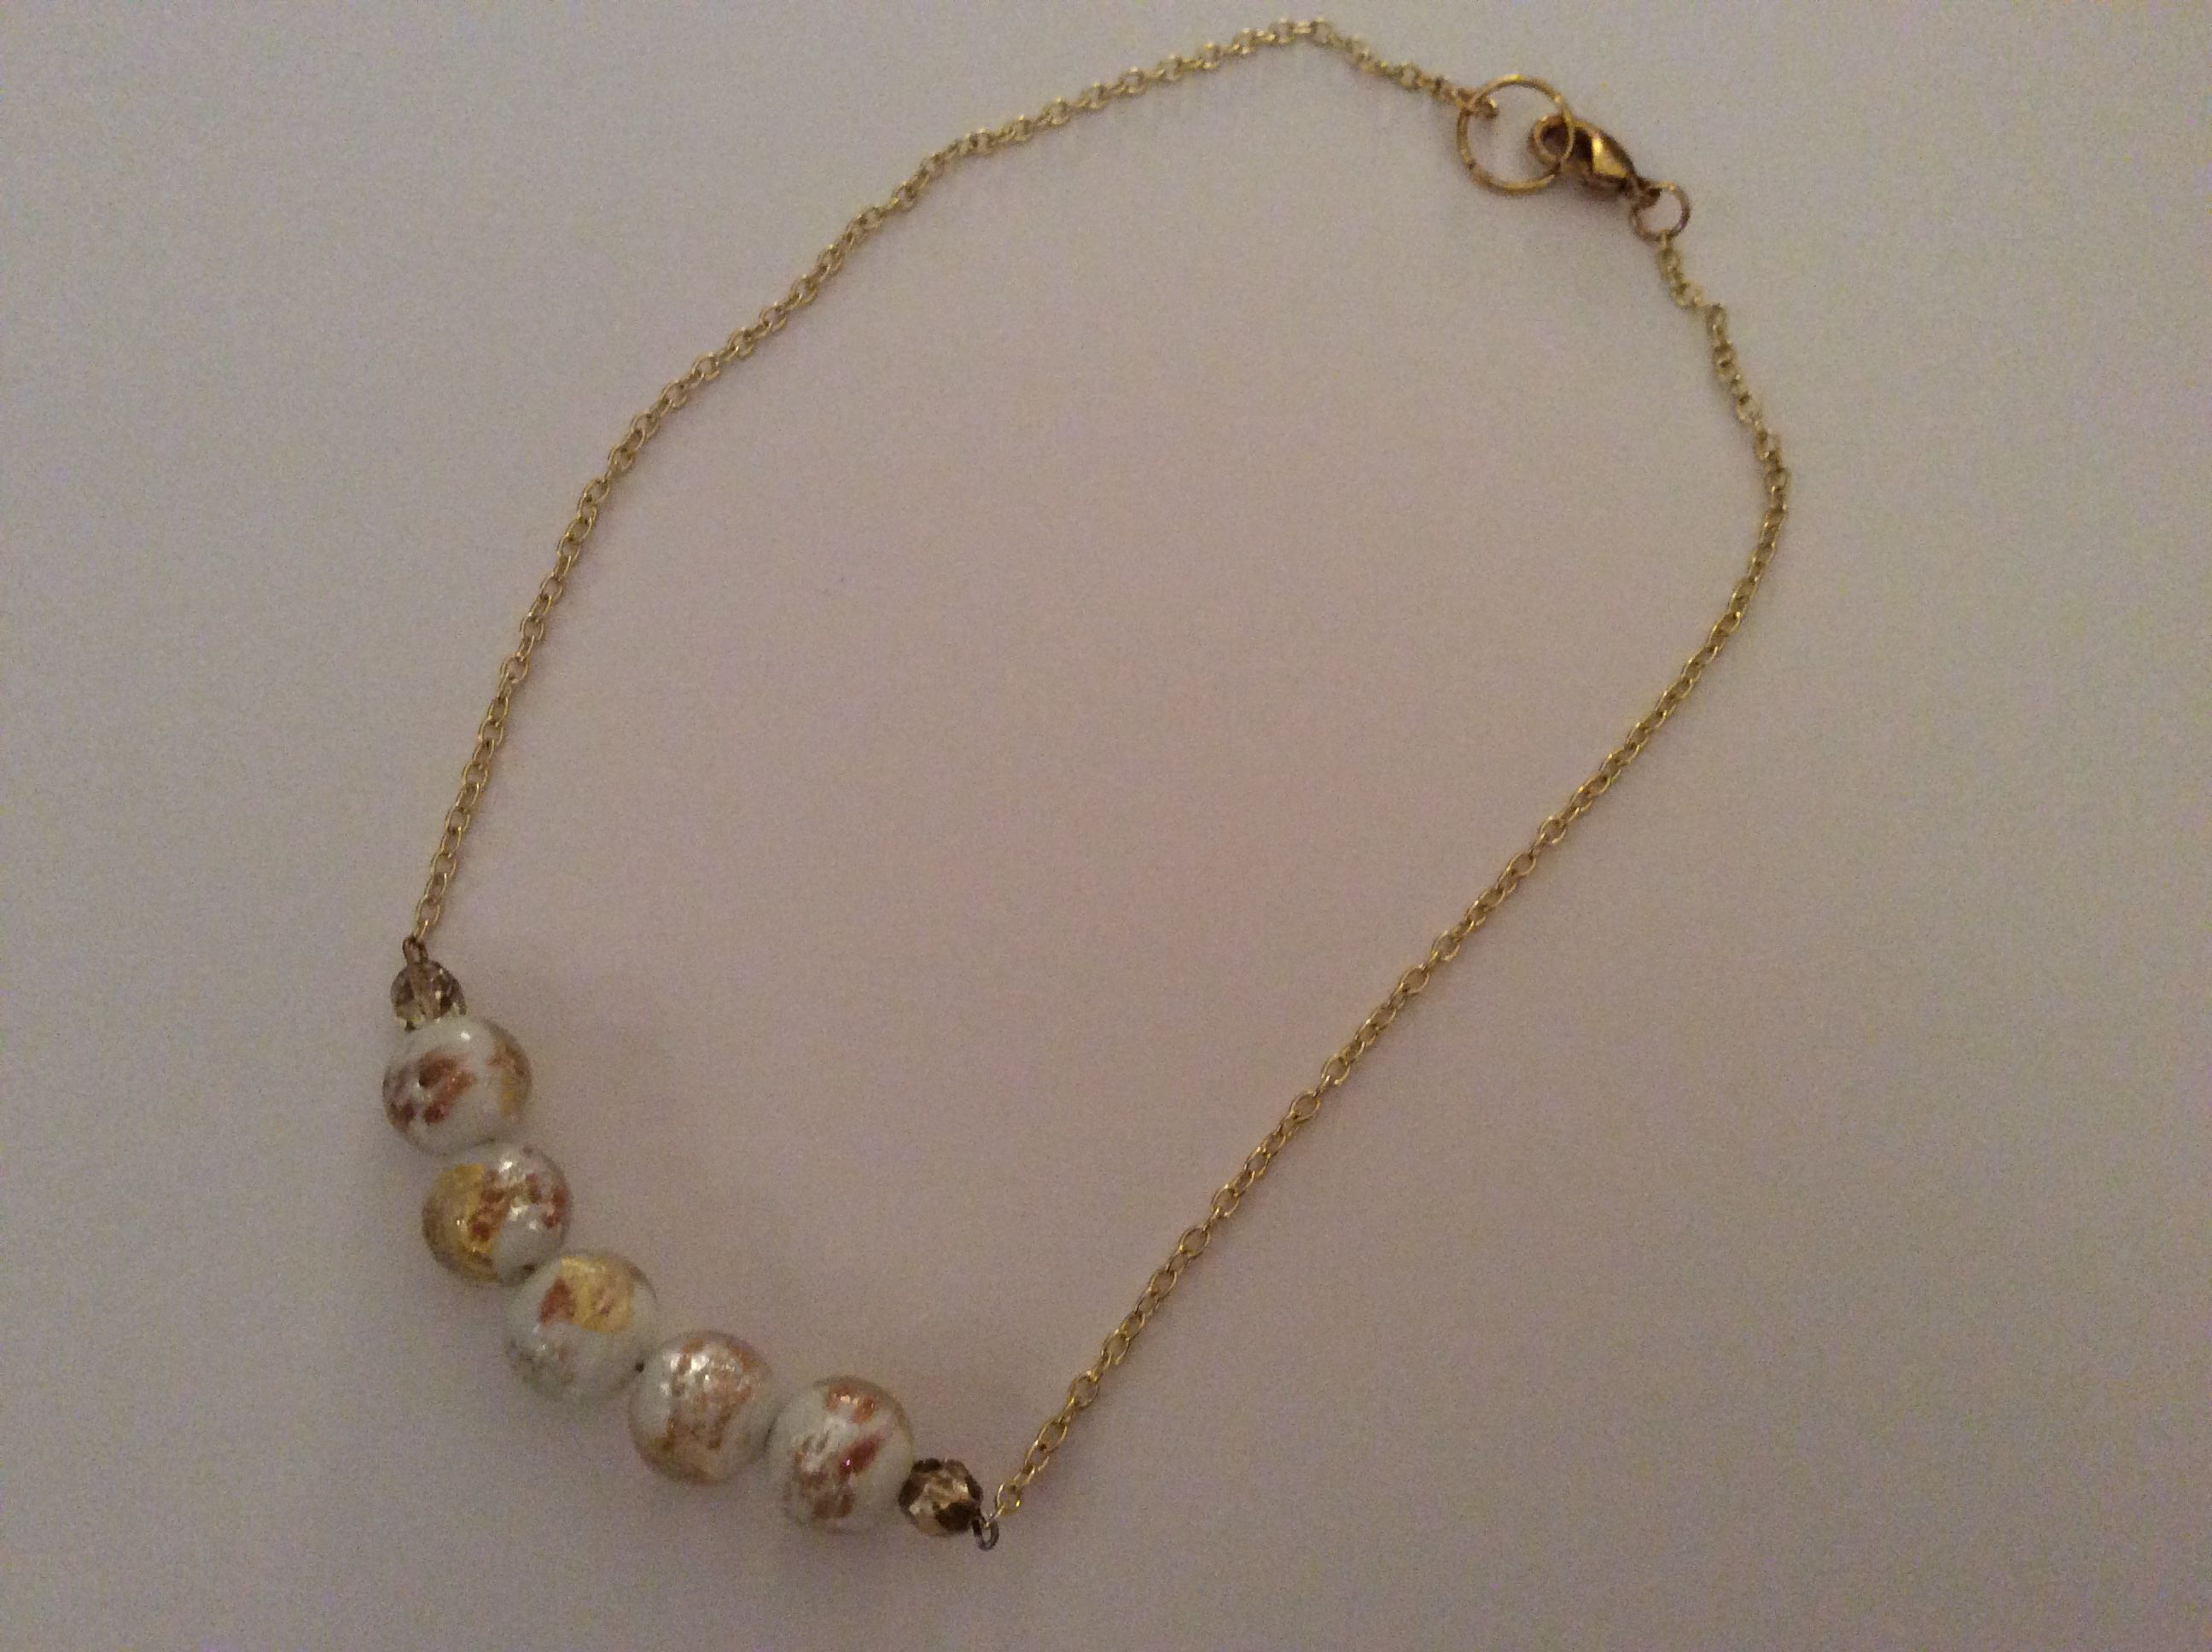 Gold necklace made with beads from carriegems